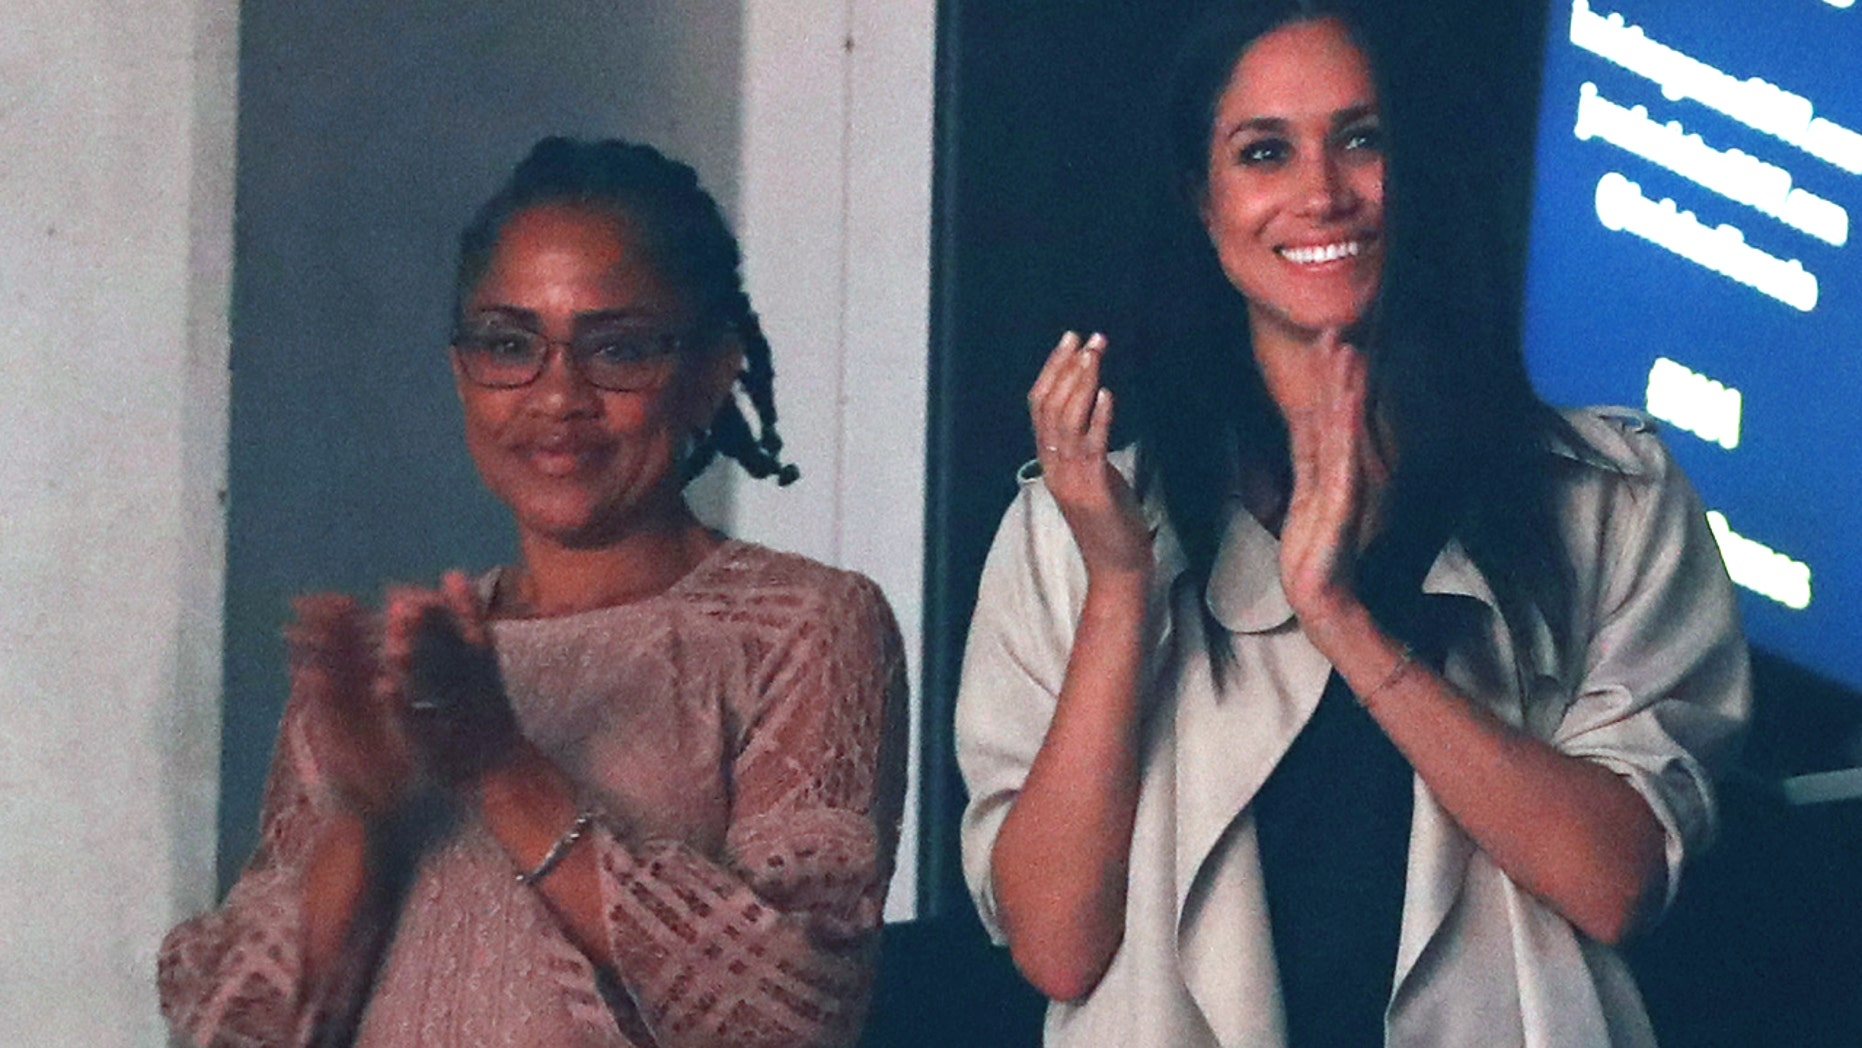 Meghan Markle (right) and her mother Doria Ragland at the closing ceremony for the Invictus Games in Toronto, Ontario, Canada September 30, 2017.